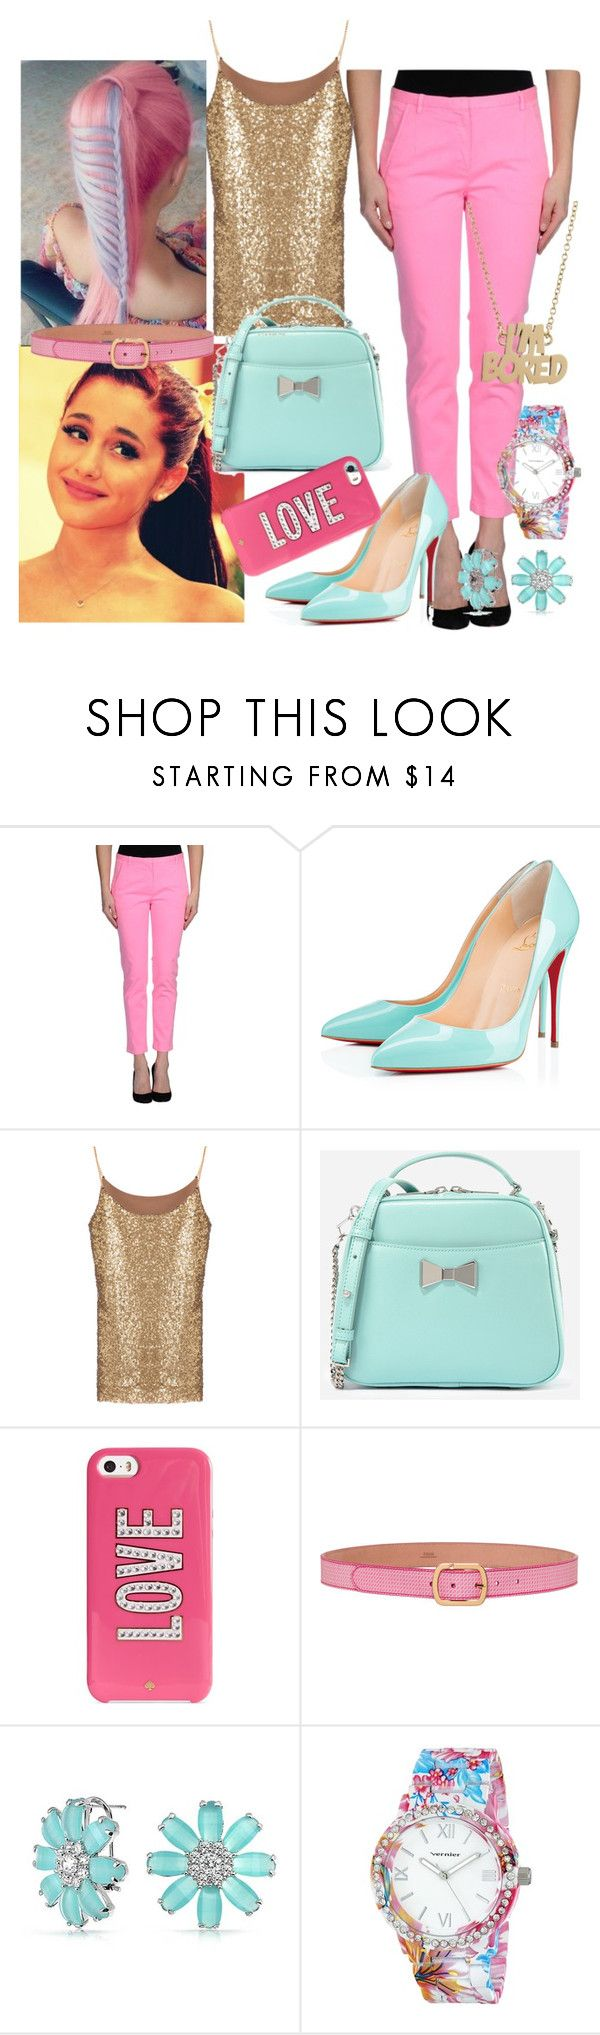 """""""Untitled #175"""" by sara-bitch1 ❤ liked on Polyvore featuring ..,MERCI, CHARLES & KEITH, Kate Spade, Fendi, Bling Jewelry, Vernier and Marc by Marc Jacobs"""